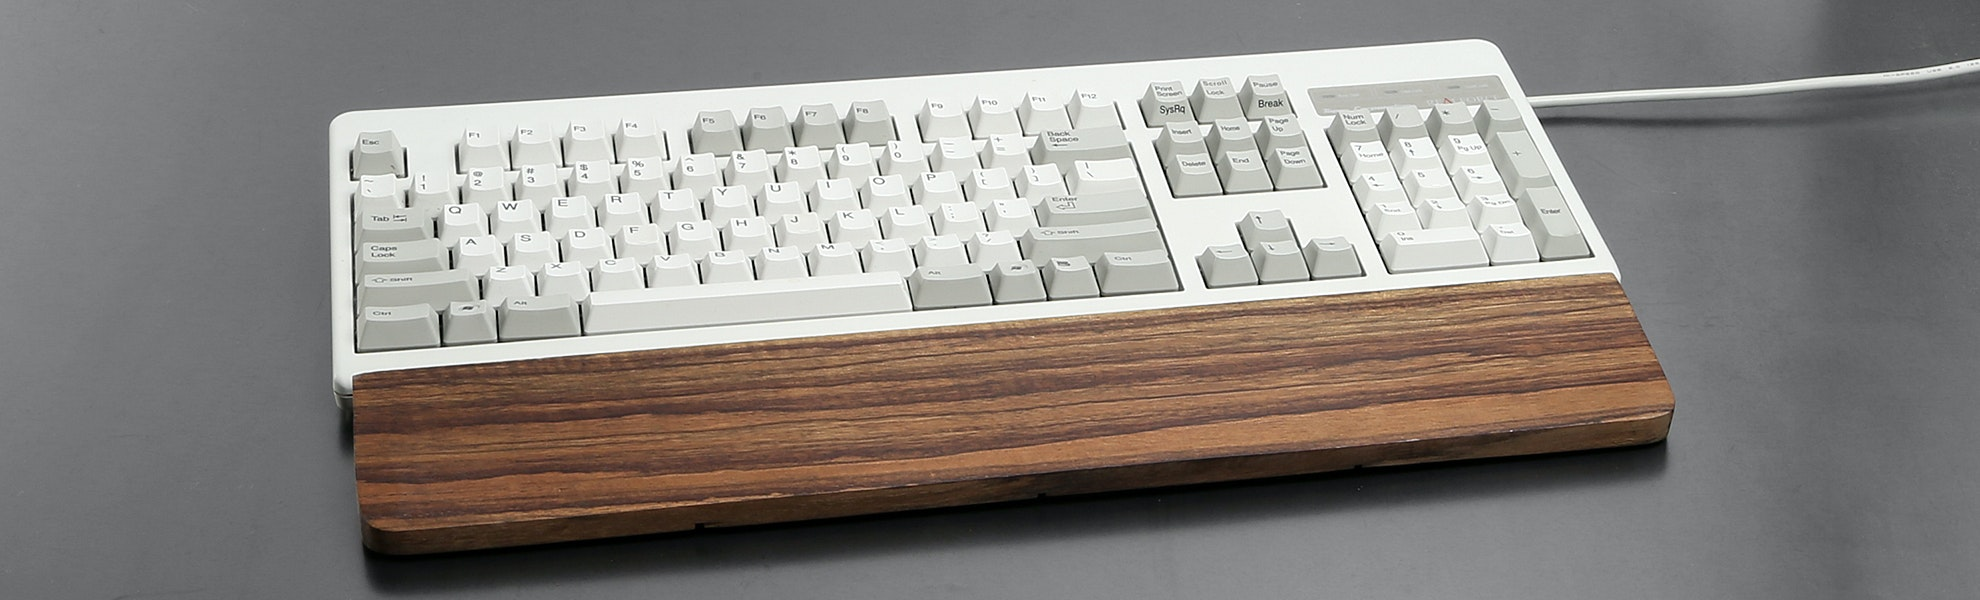 Topre Realforce 104U and Wooden Wrist